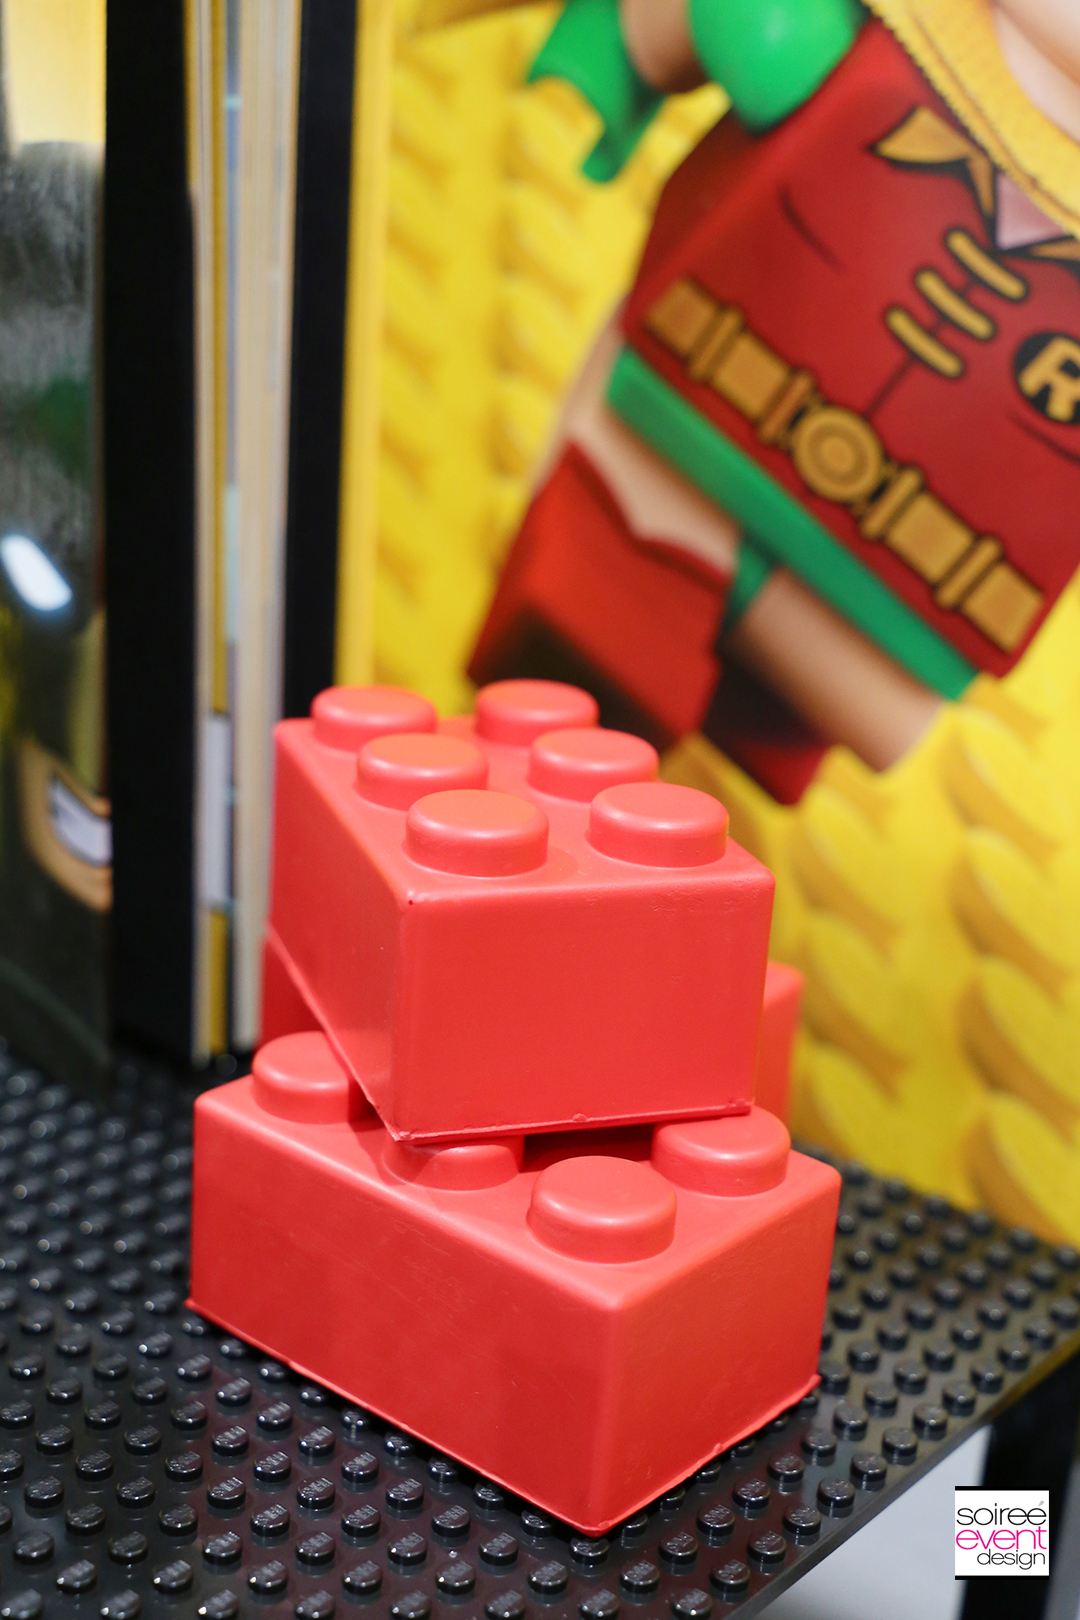 Lego Batman Party Favors Ideas - Lego Brick Squishies